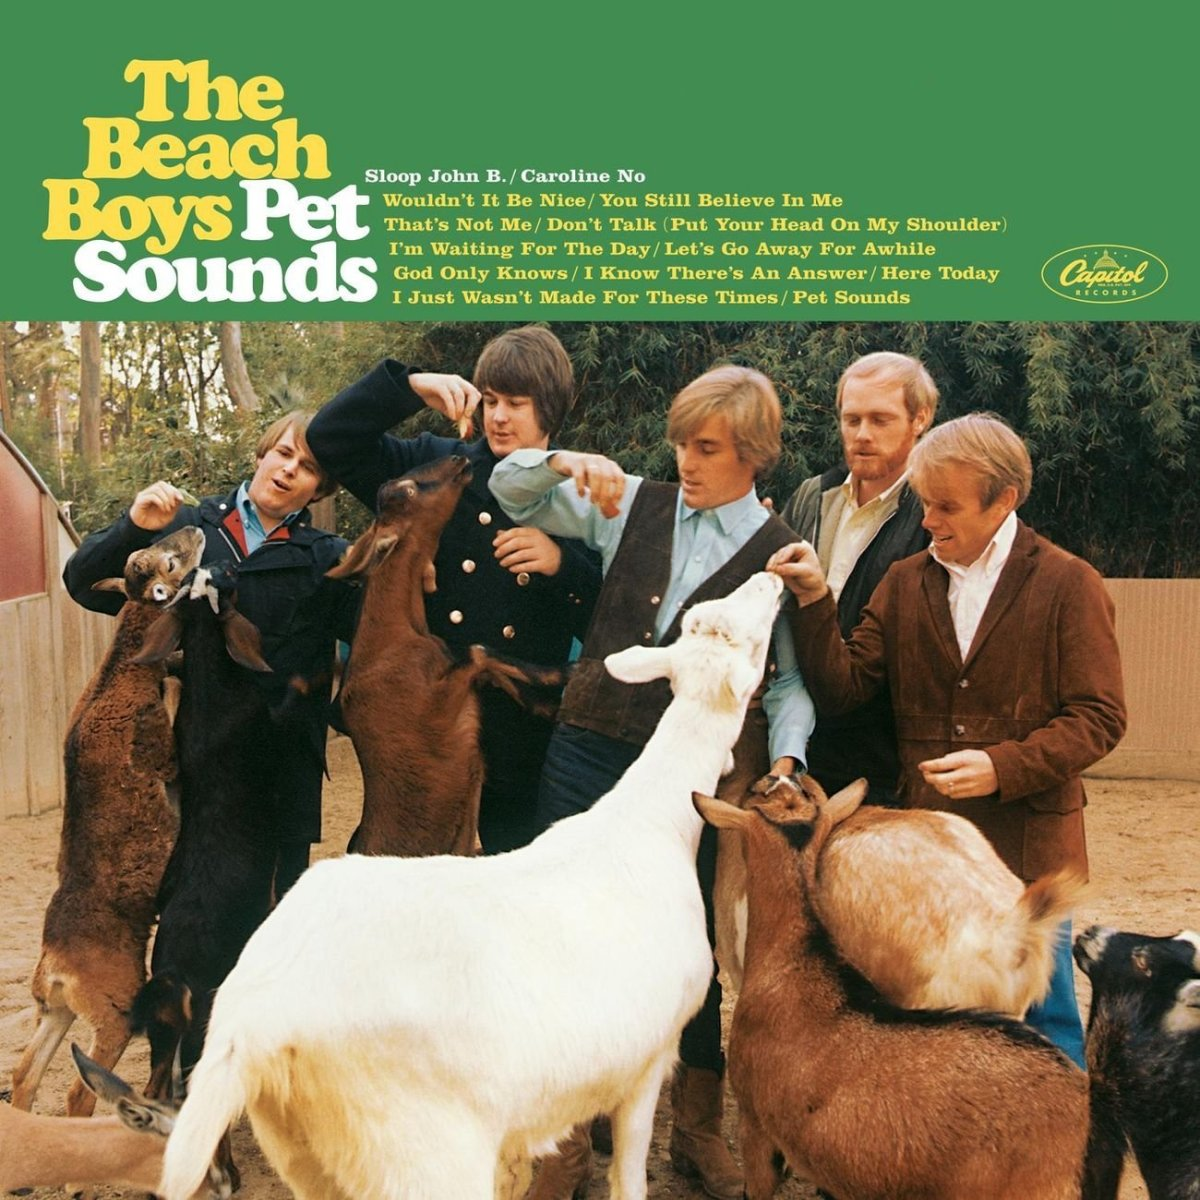 The Beach Boys Pet Sounds: When Greatness Finds Its Way To You